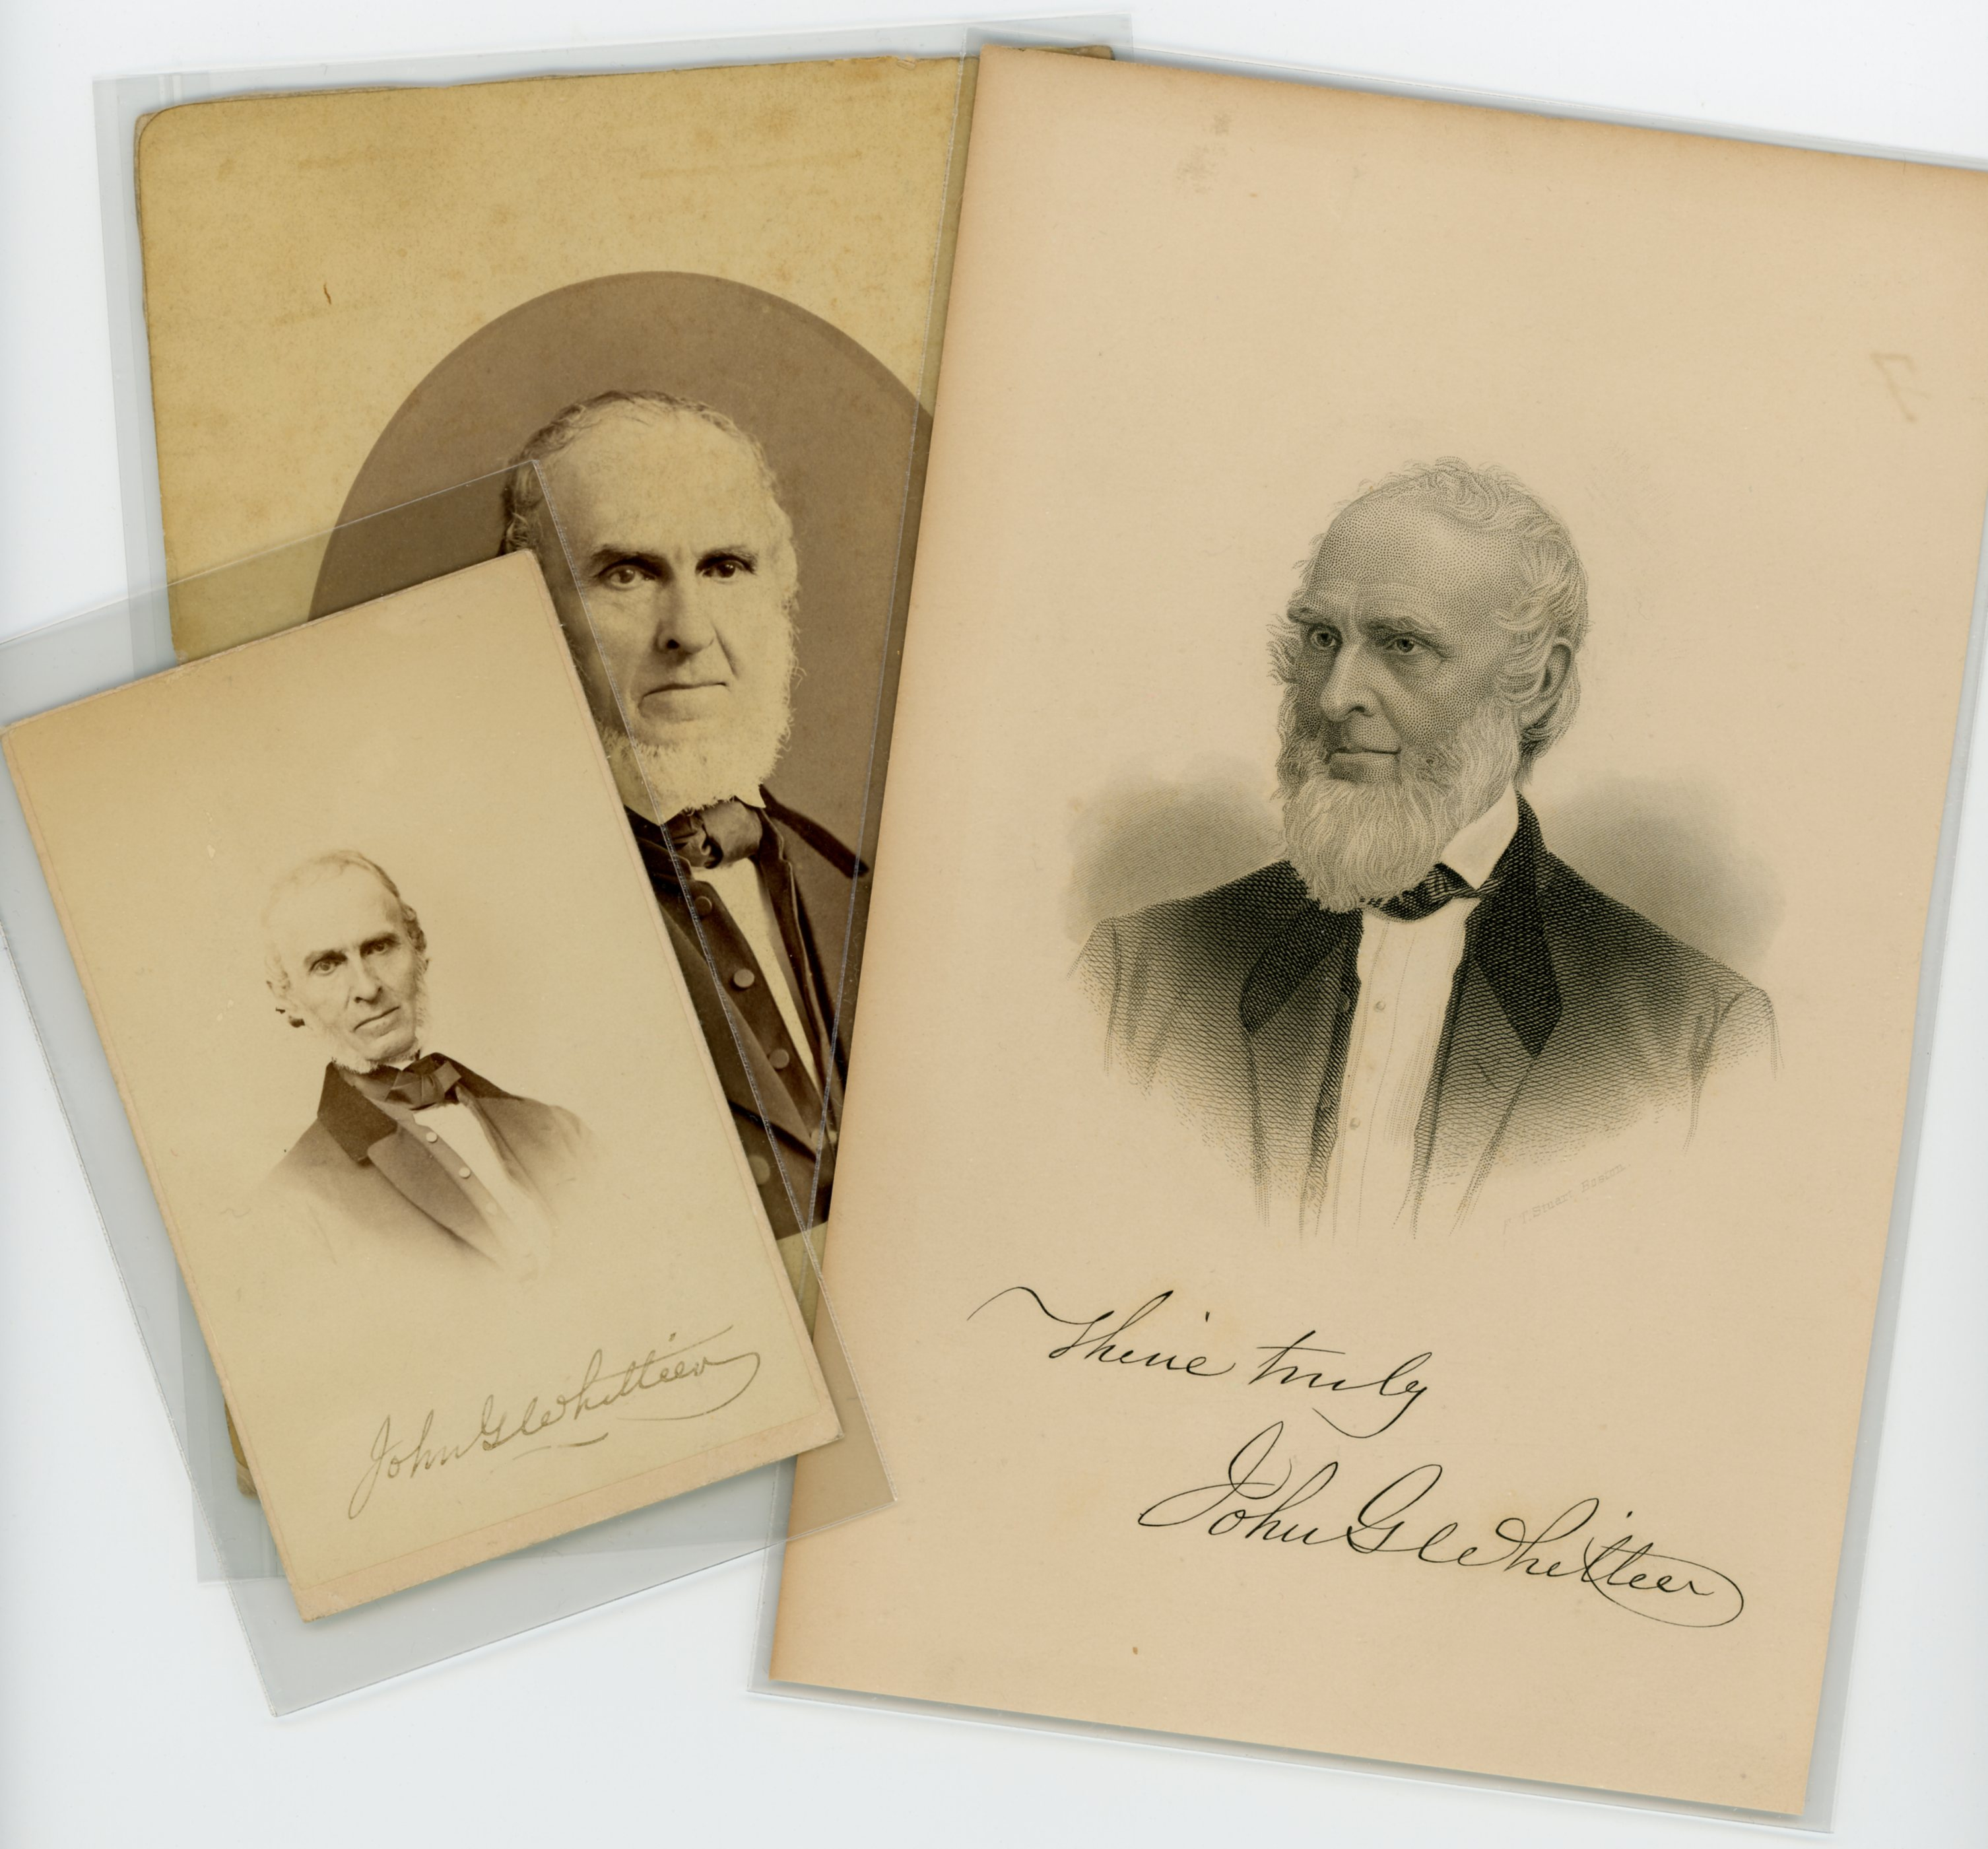 Fifteen Photographs And Prints Were Purchased Including A Carte De Visite Photograph Of John Greenleaf Whittier Signed By